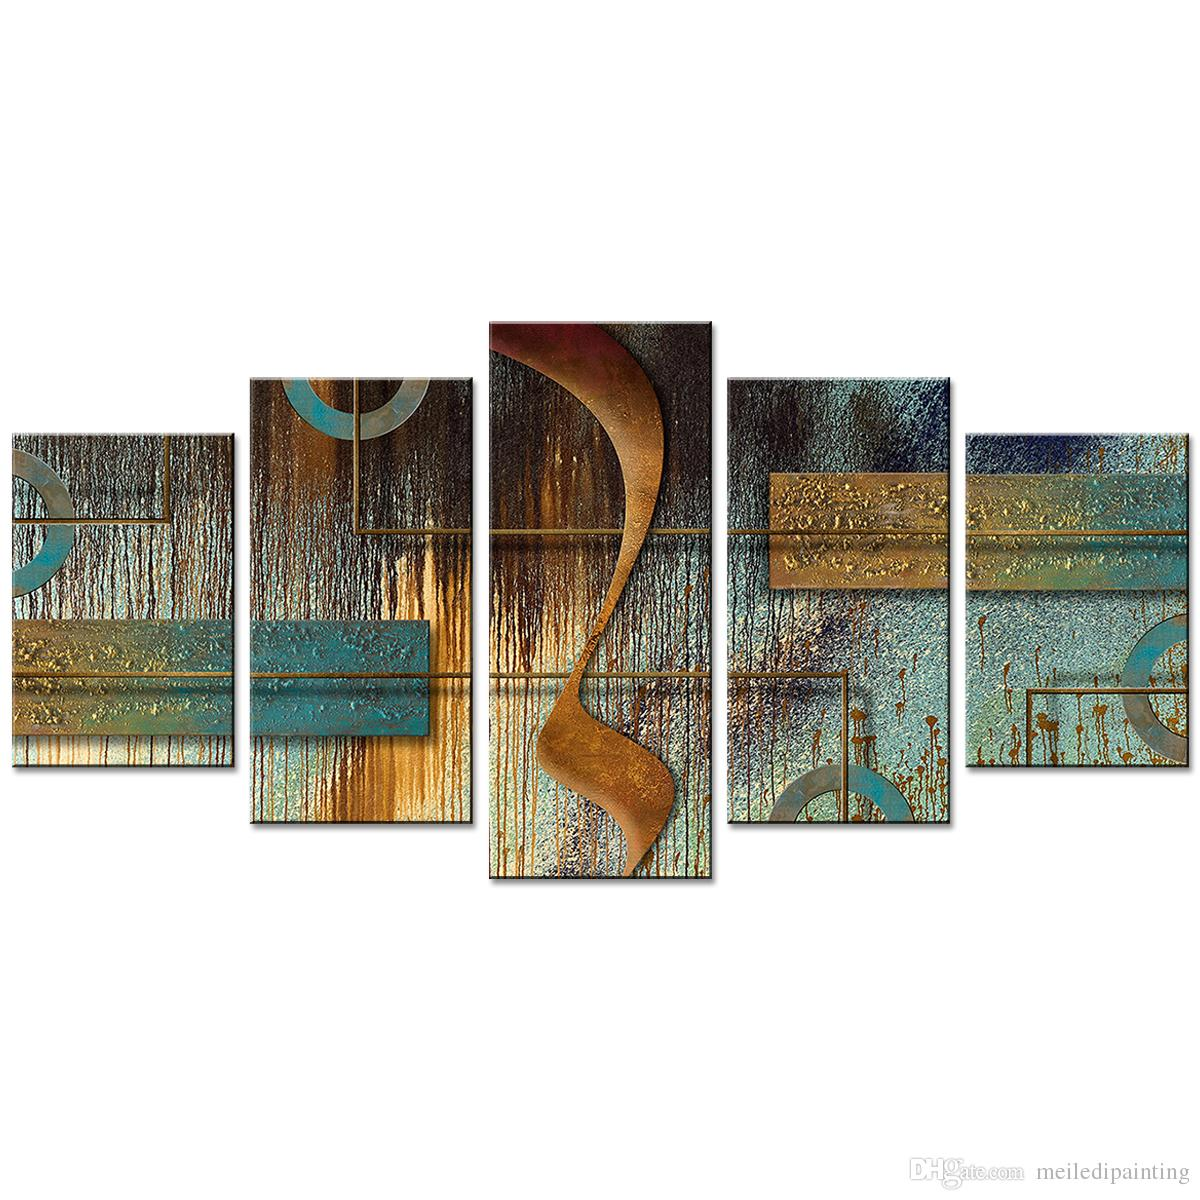 2019 geometric abstract painting wall art paint canvas painting wall art for home decor 5 pictures with wooden framed from meiledipainting 39 84 dhgate